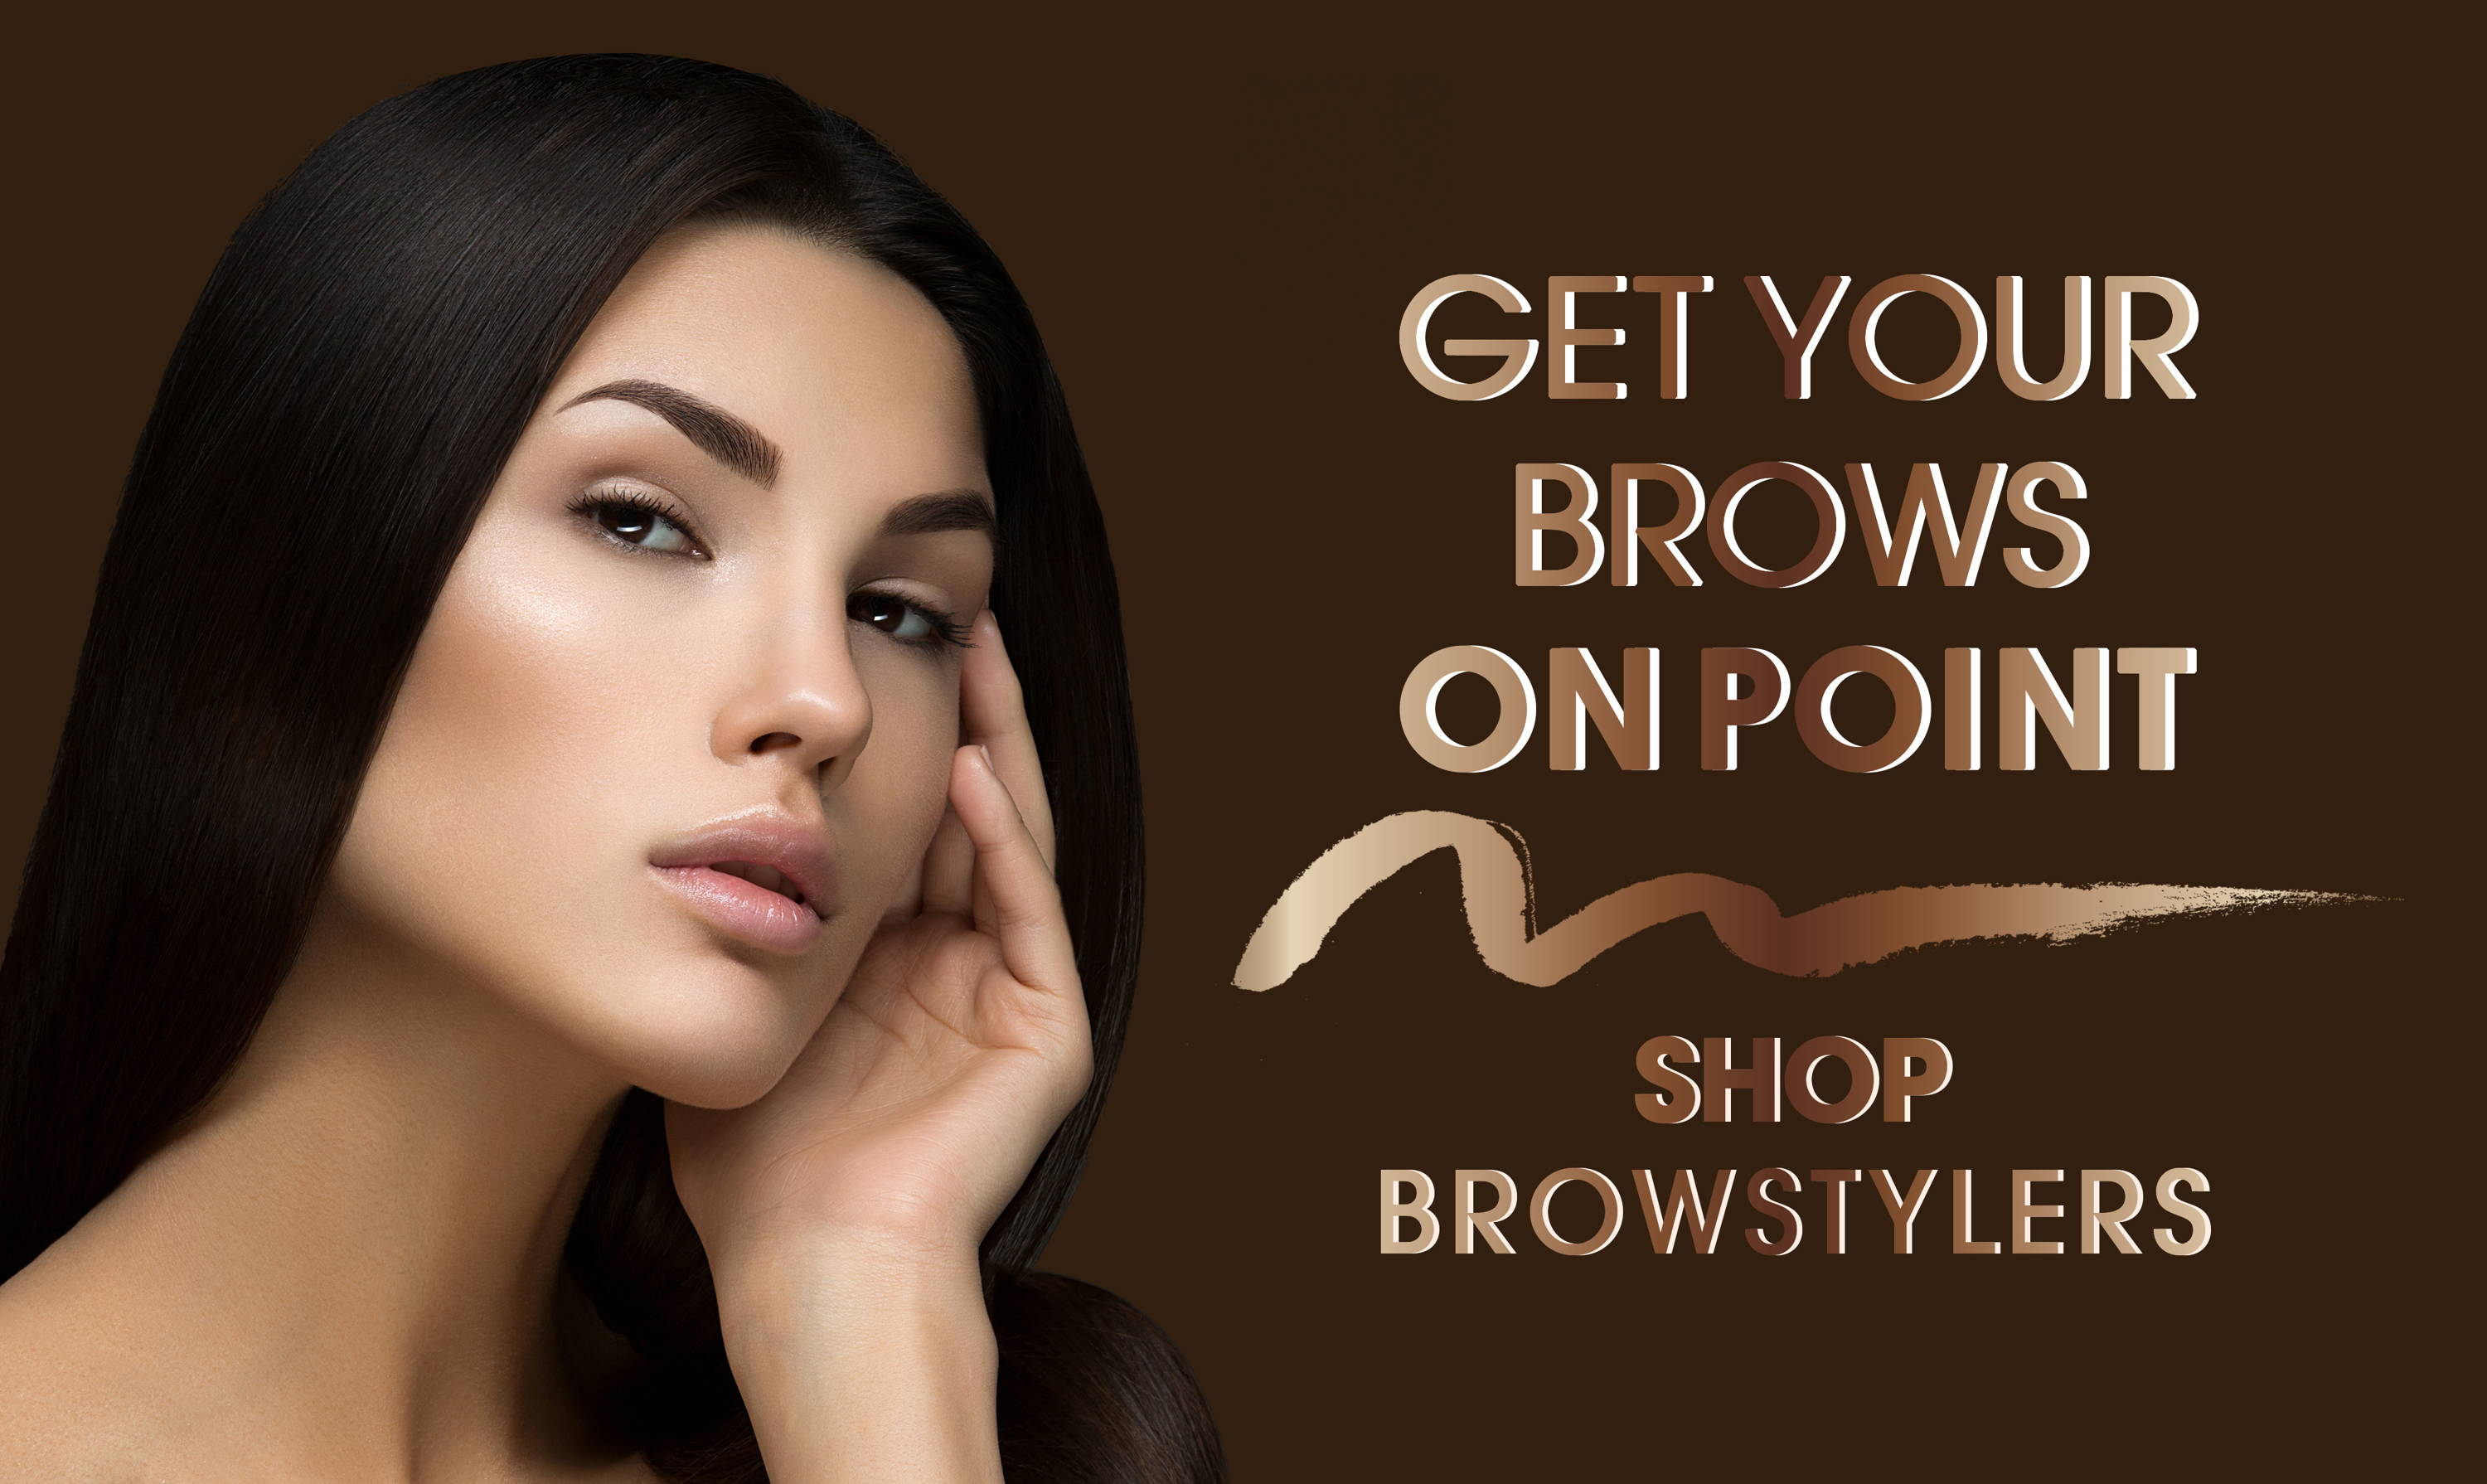 Nanacoco Professional eyebrow products